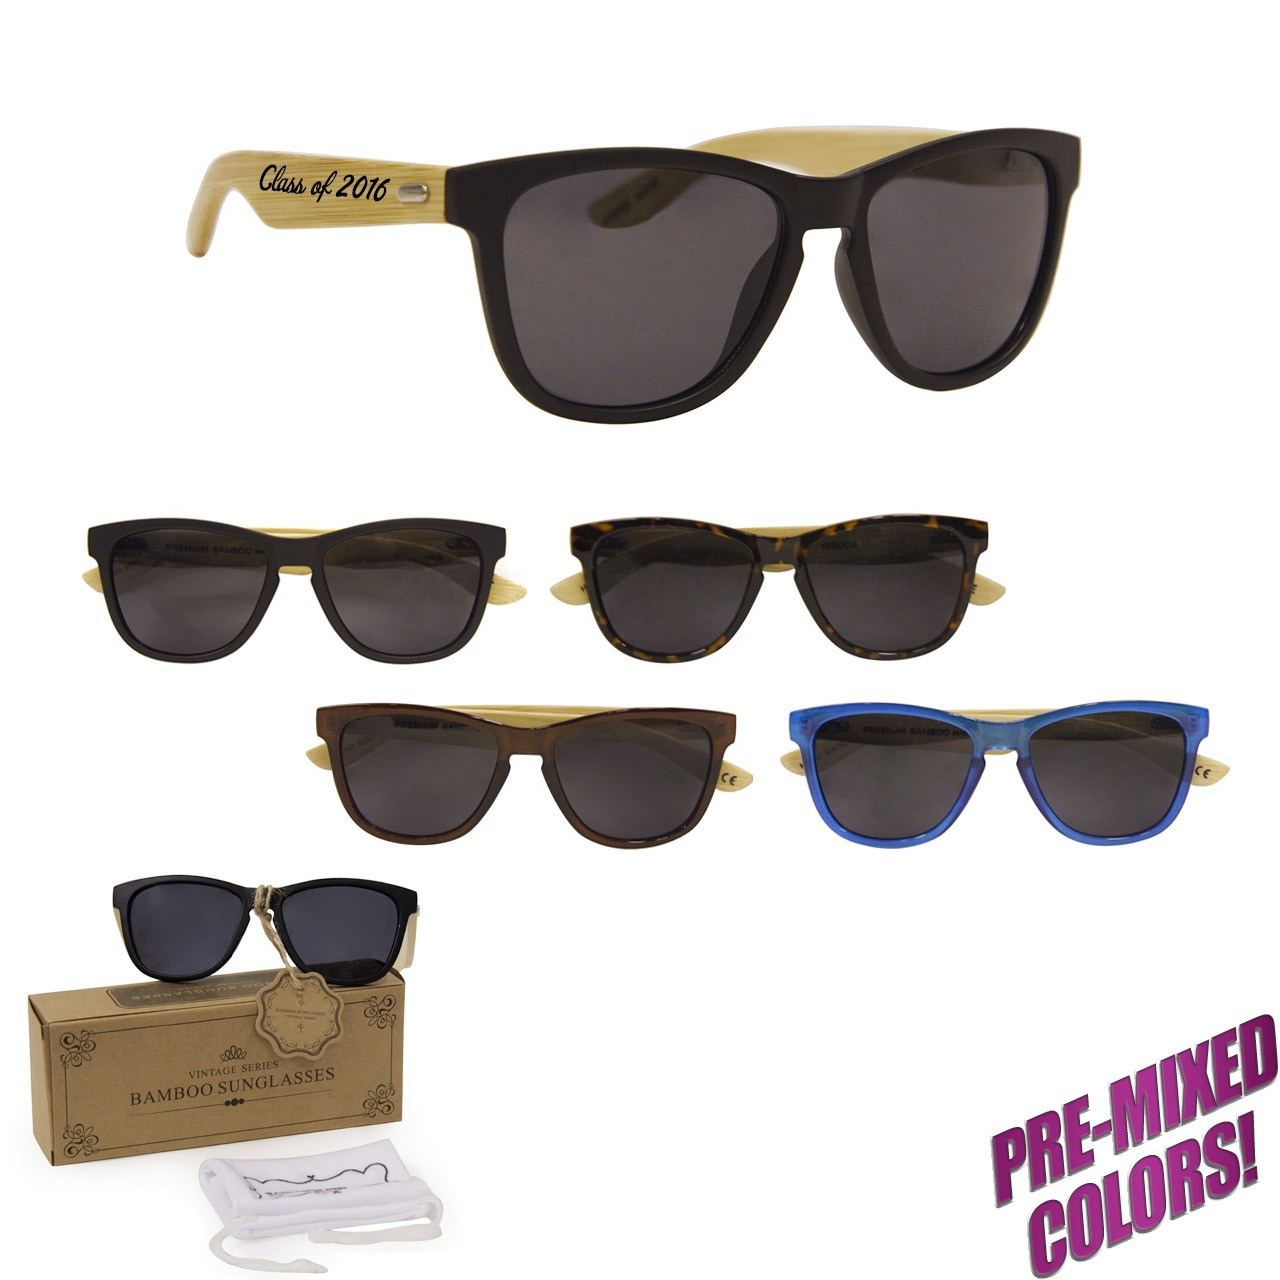 Branded Bamboo Sunglasses PW8004